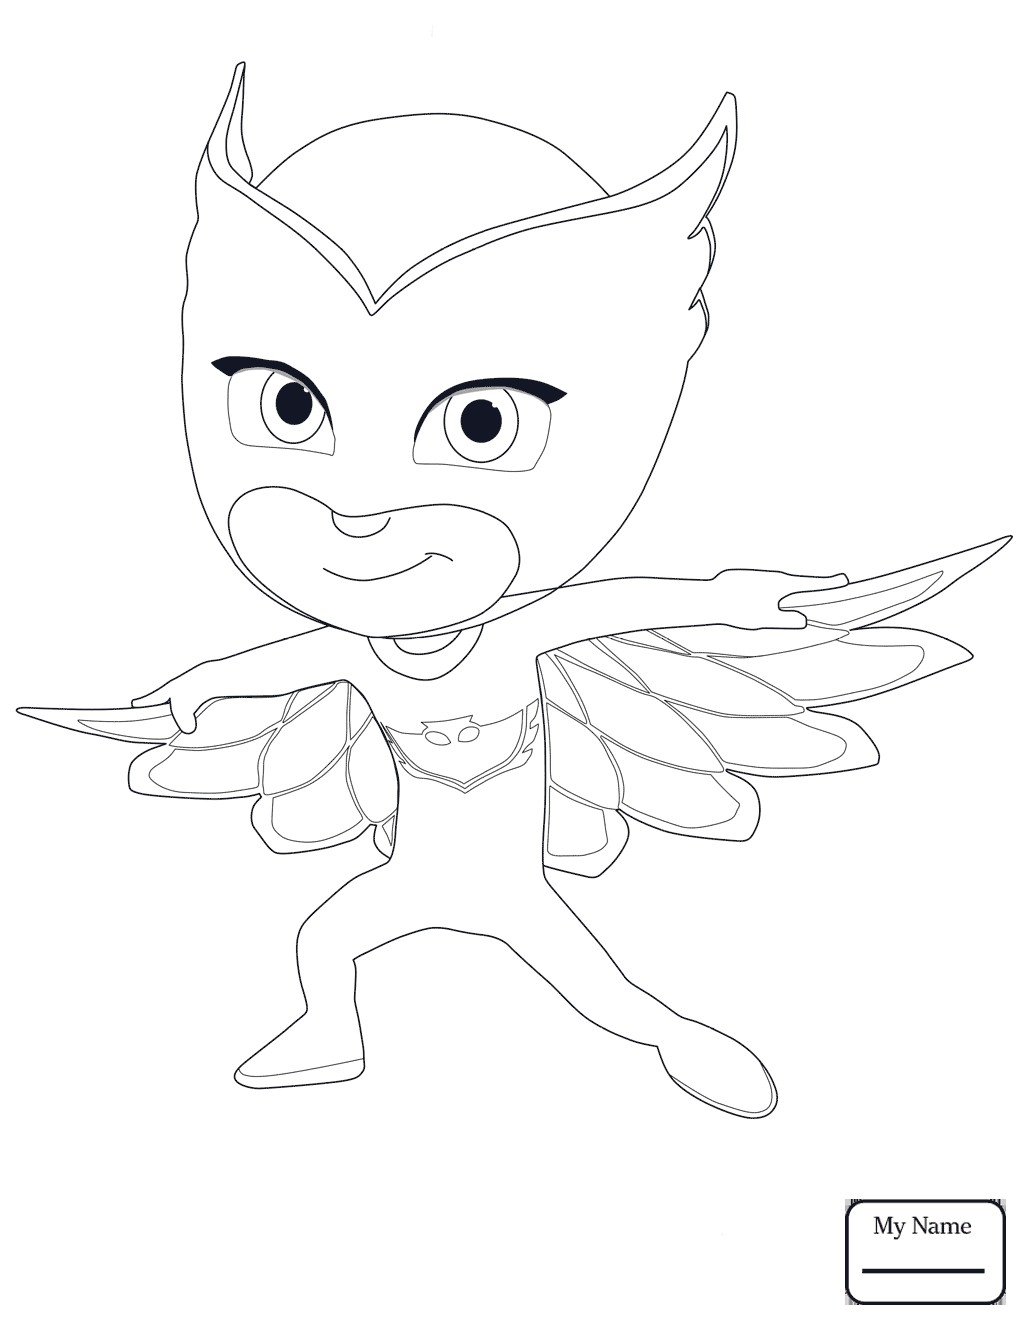 disney-coloring-pages-pjmasks-13-o-coloring-pages-for-pj-masks-best-pj-masks-cartoons-catboy-coloring-pages